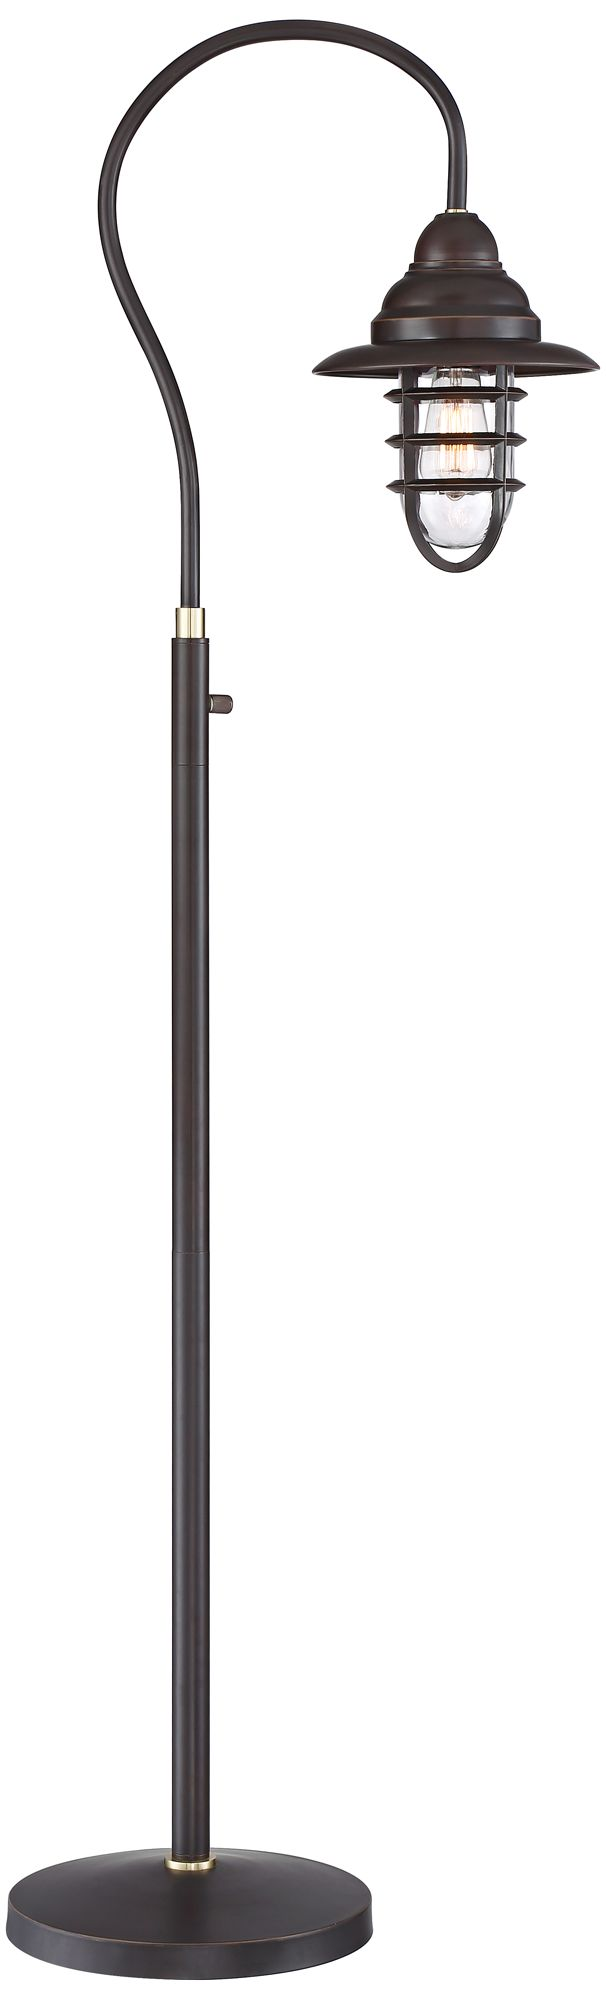 Franklin Iron Works Knox Oil Rubbed Bronze Floor Lamp